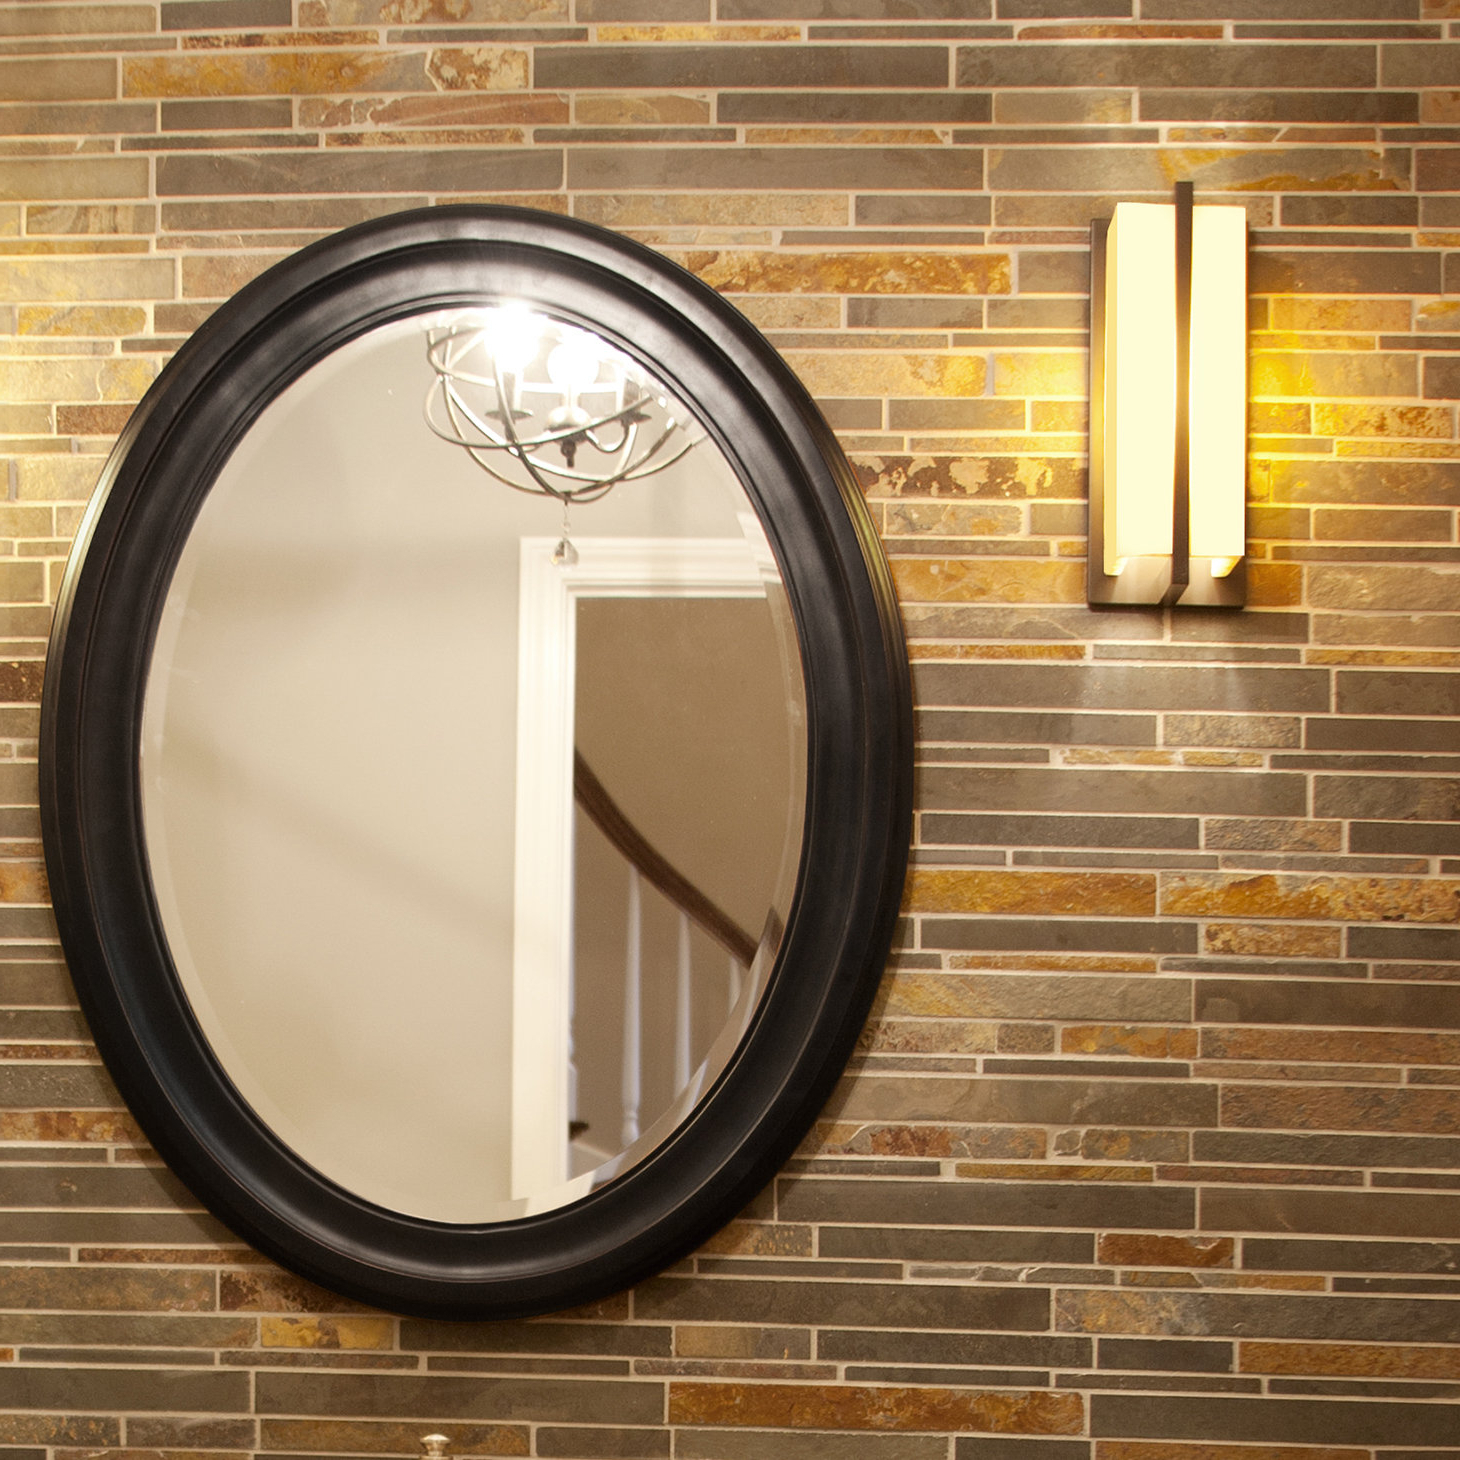 Pfister Oval Wood Wall Mirror With Regard To Latest Oval Wood Wall Mirrors (View 15 of 20)